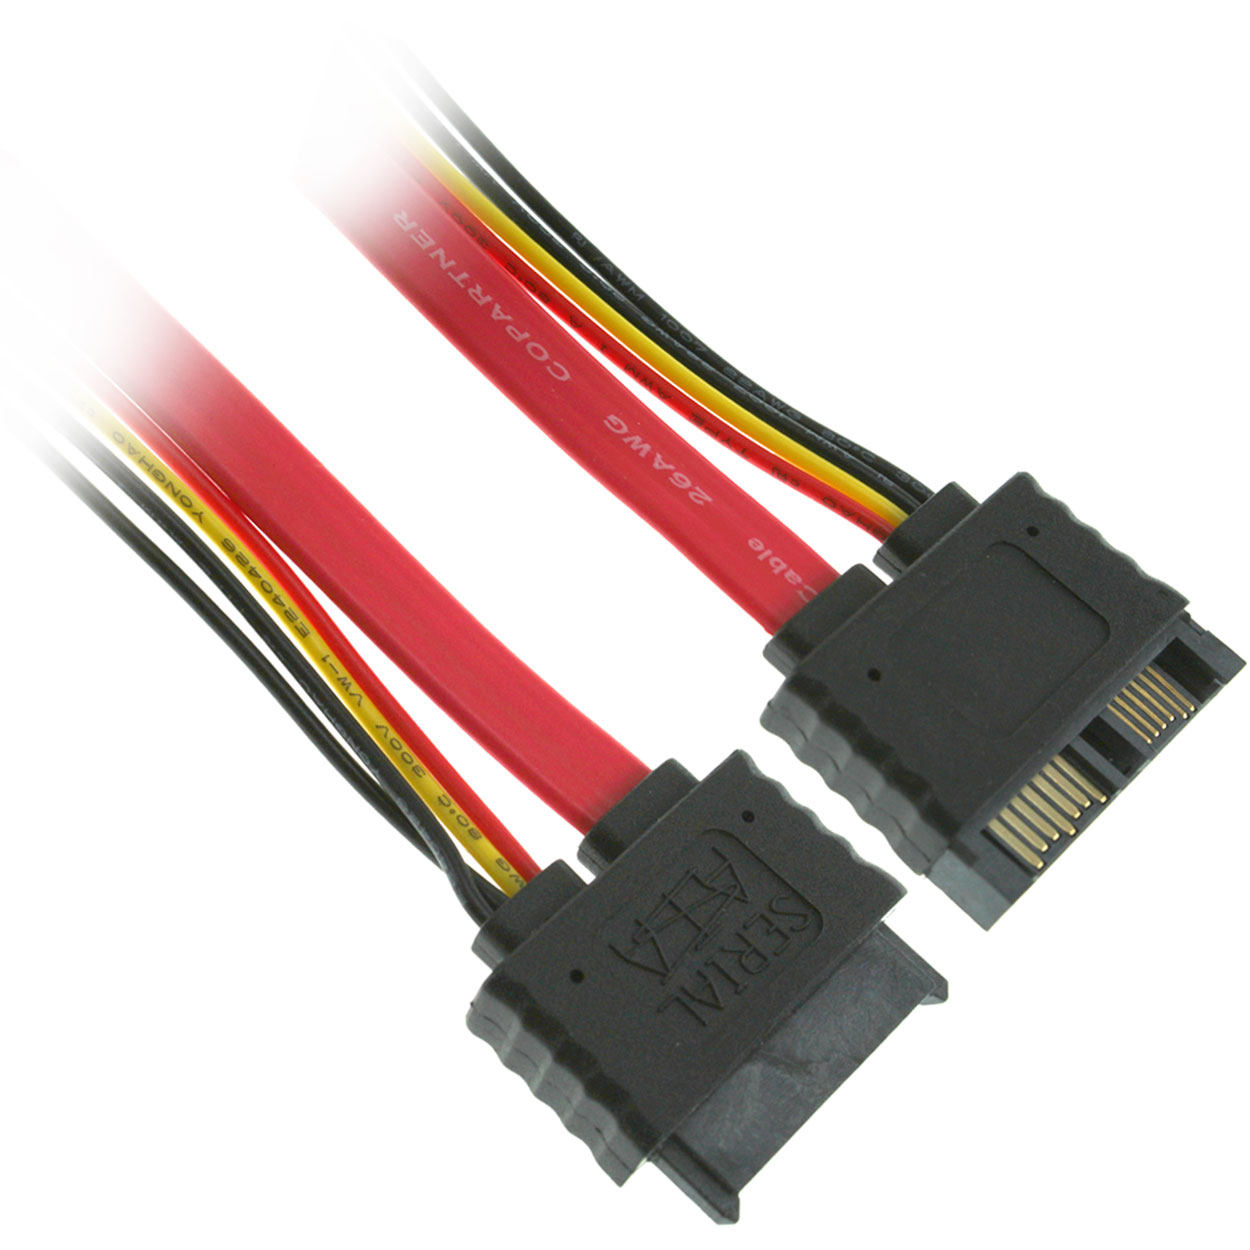 20 inch Micro SATA III Male to Female Extension Cable (for 1.8 inch Micro SATA SSD Drives)